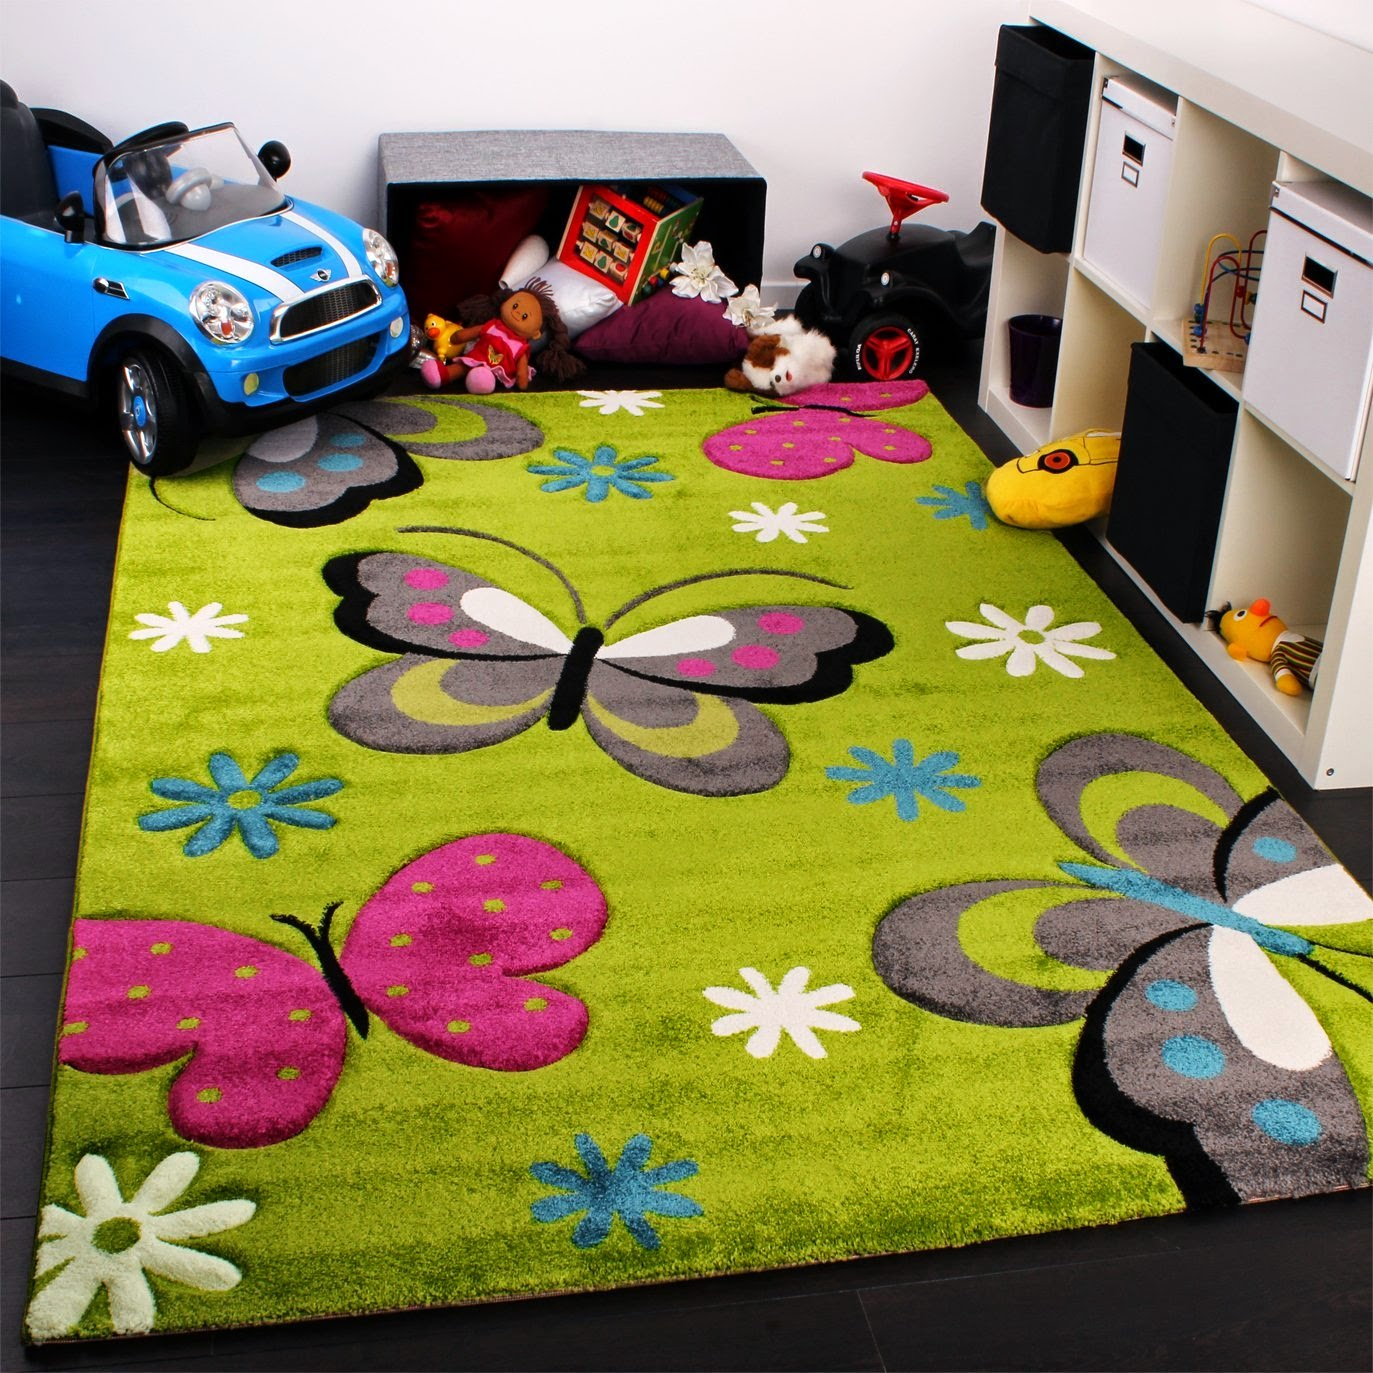 tapis de sol pour chambre d 39 enfants tapis d co pas cher. Black Bedroom Furniture Sets. Home Design Ideas